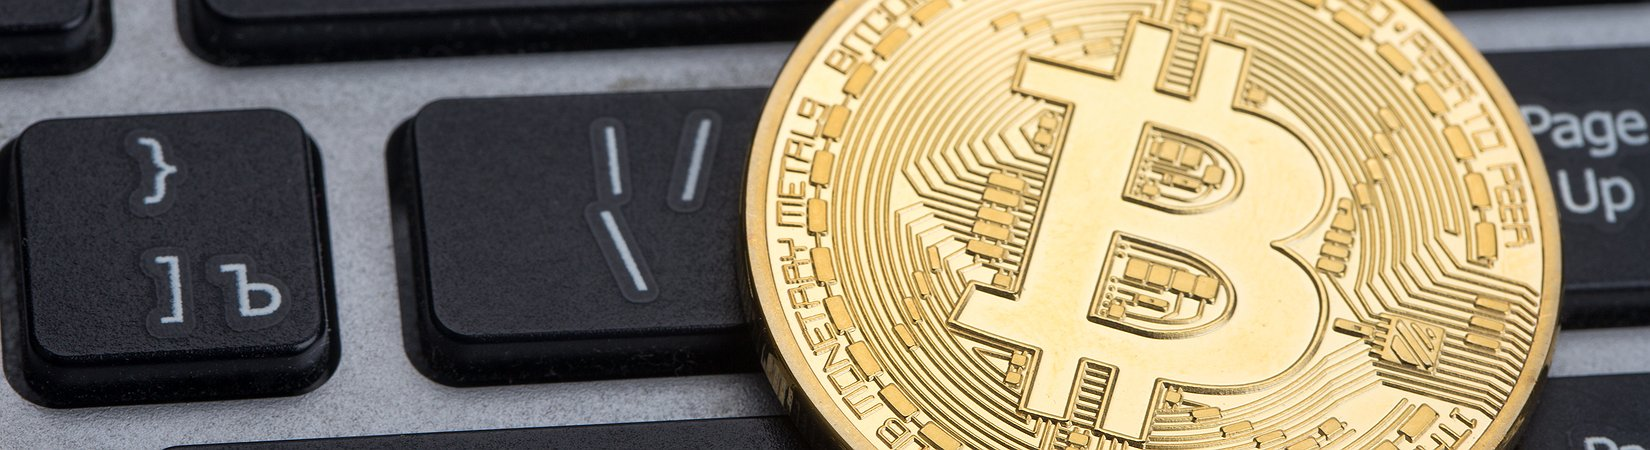 Bitcoin plunges more than 20 percent on fears currency could split